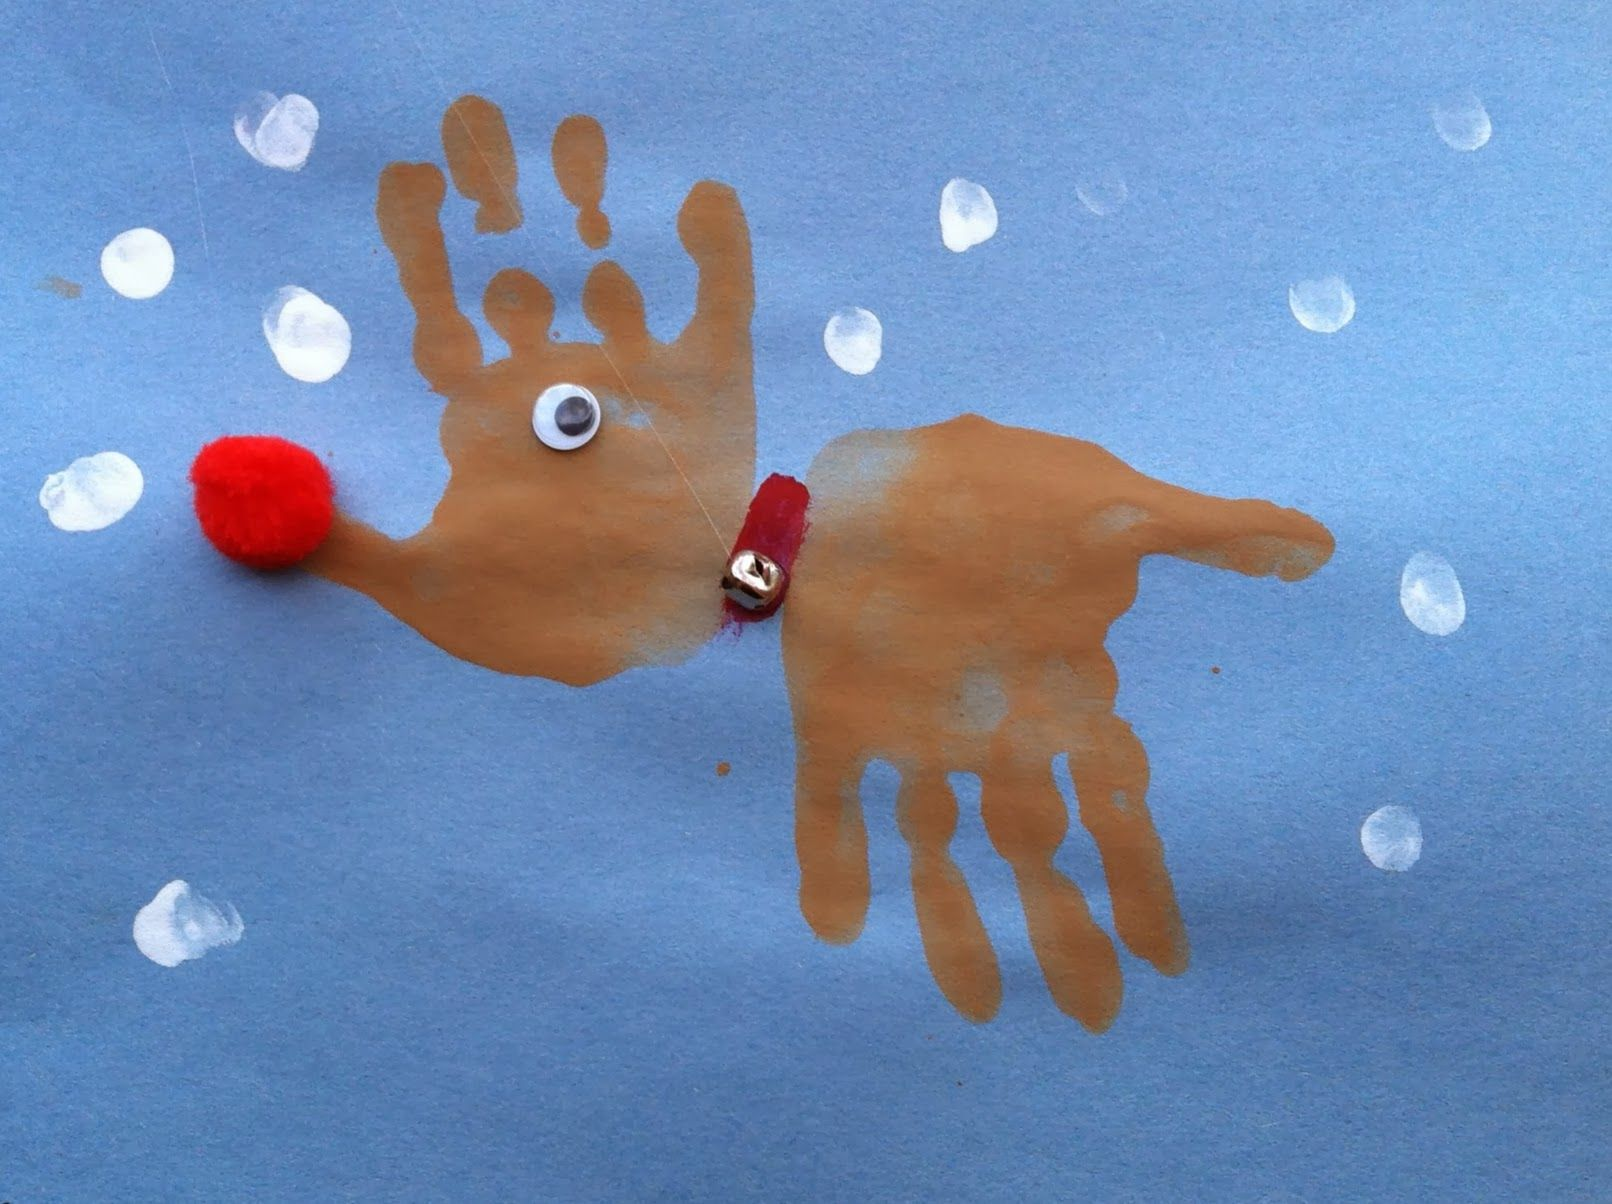 This handprint reindeer craft is a fun Christmas activity for kids